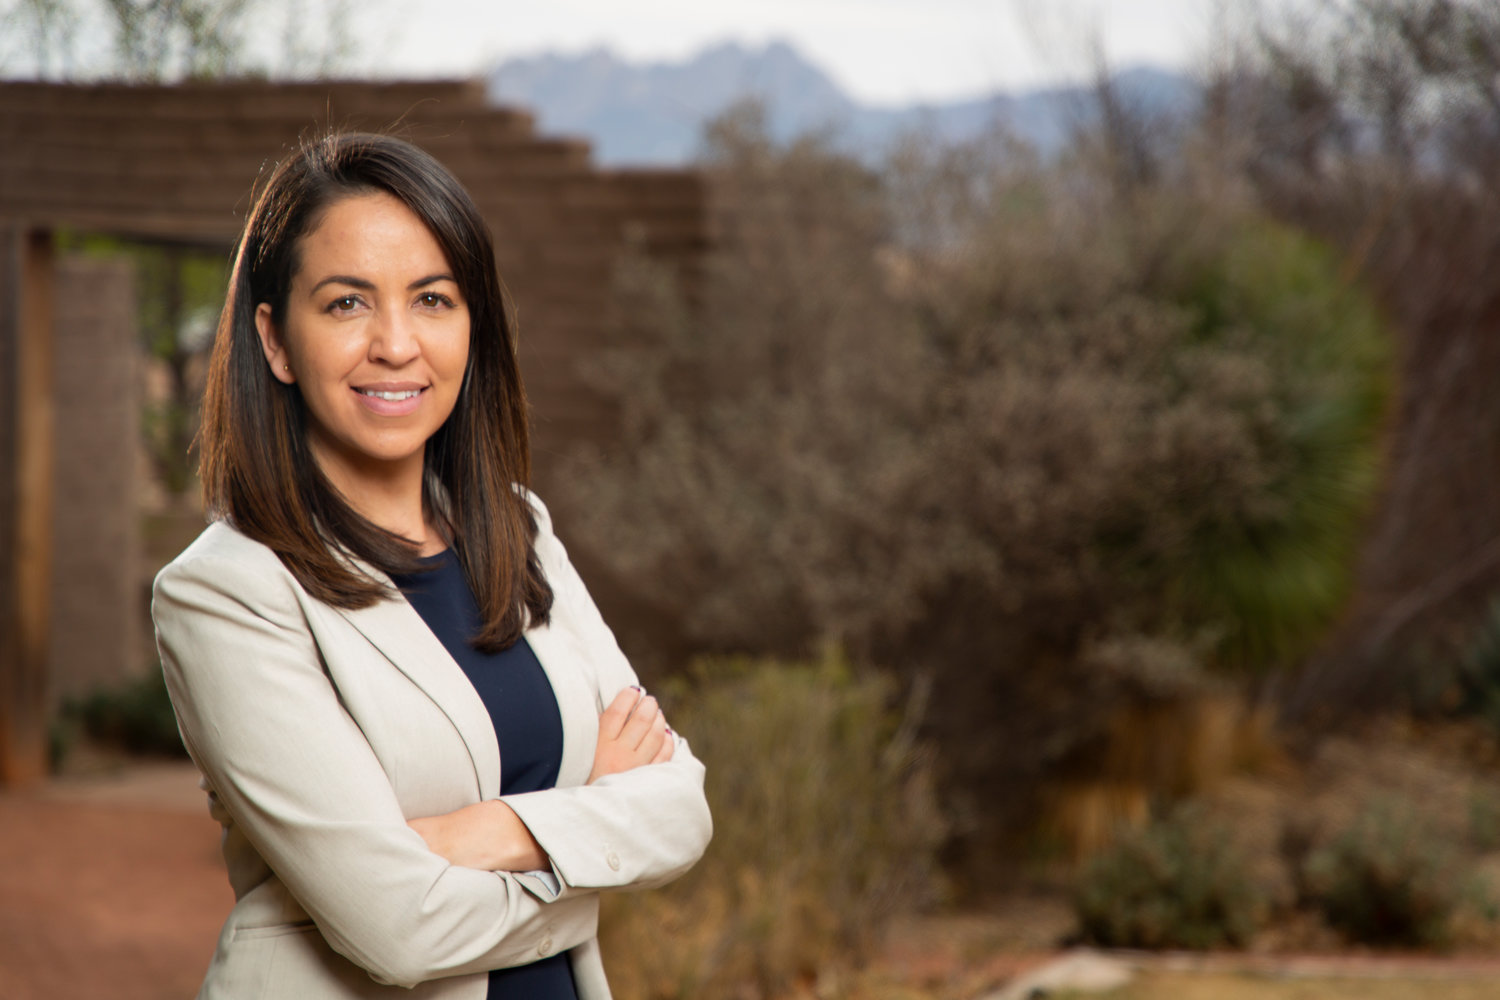 Las Cruces City Councilor-elect Tessa Stuve